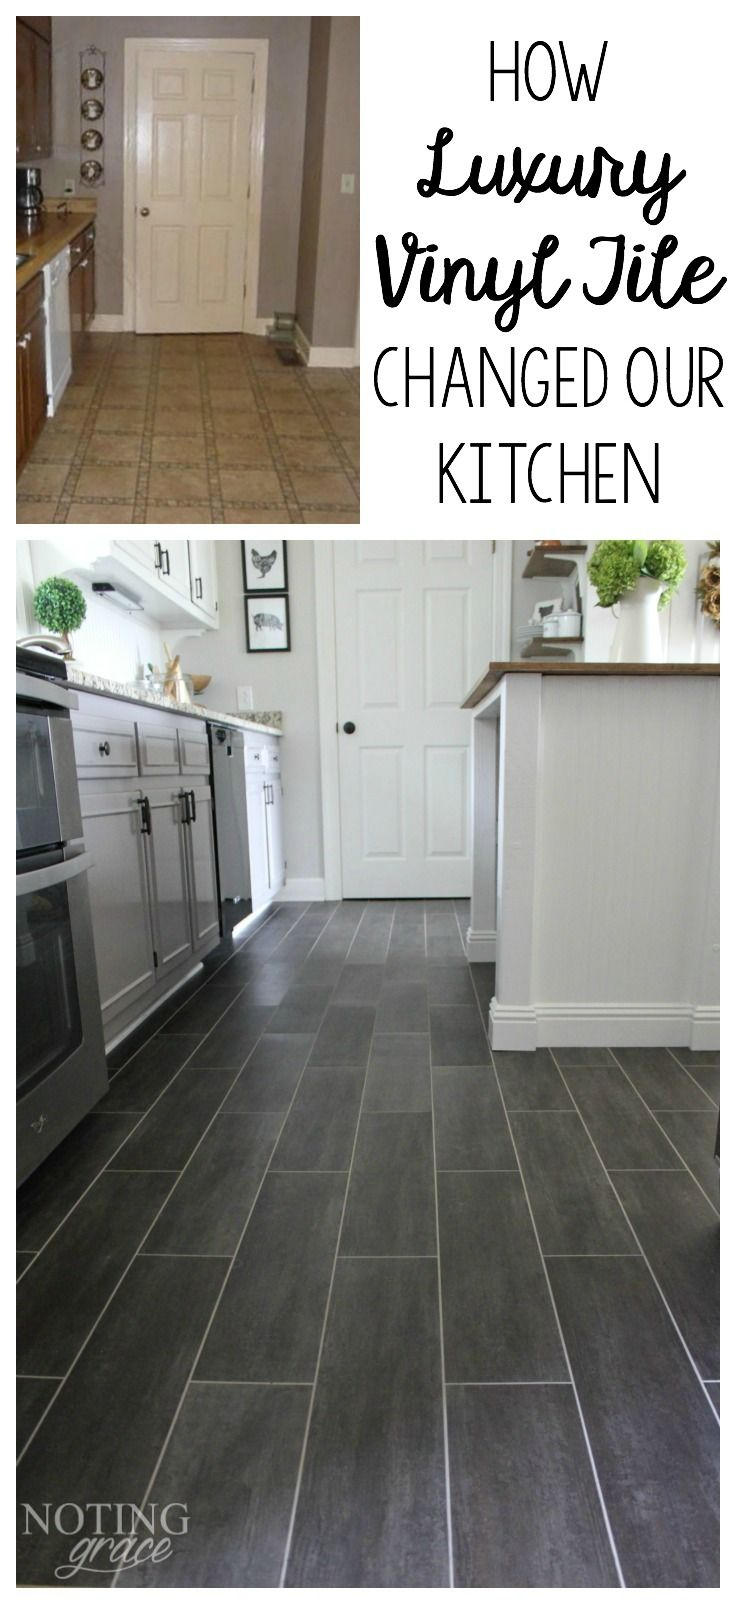 Diy kitchen flooring luxury vinyl tile vinyl tiles and for Floors tiles for kitchen